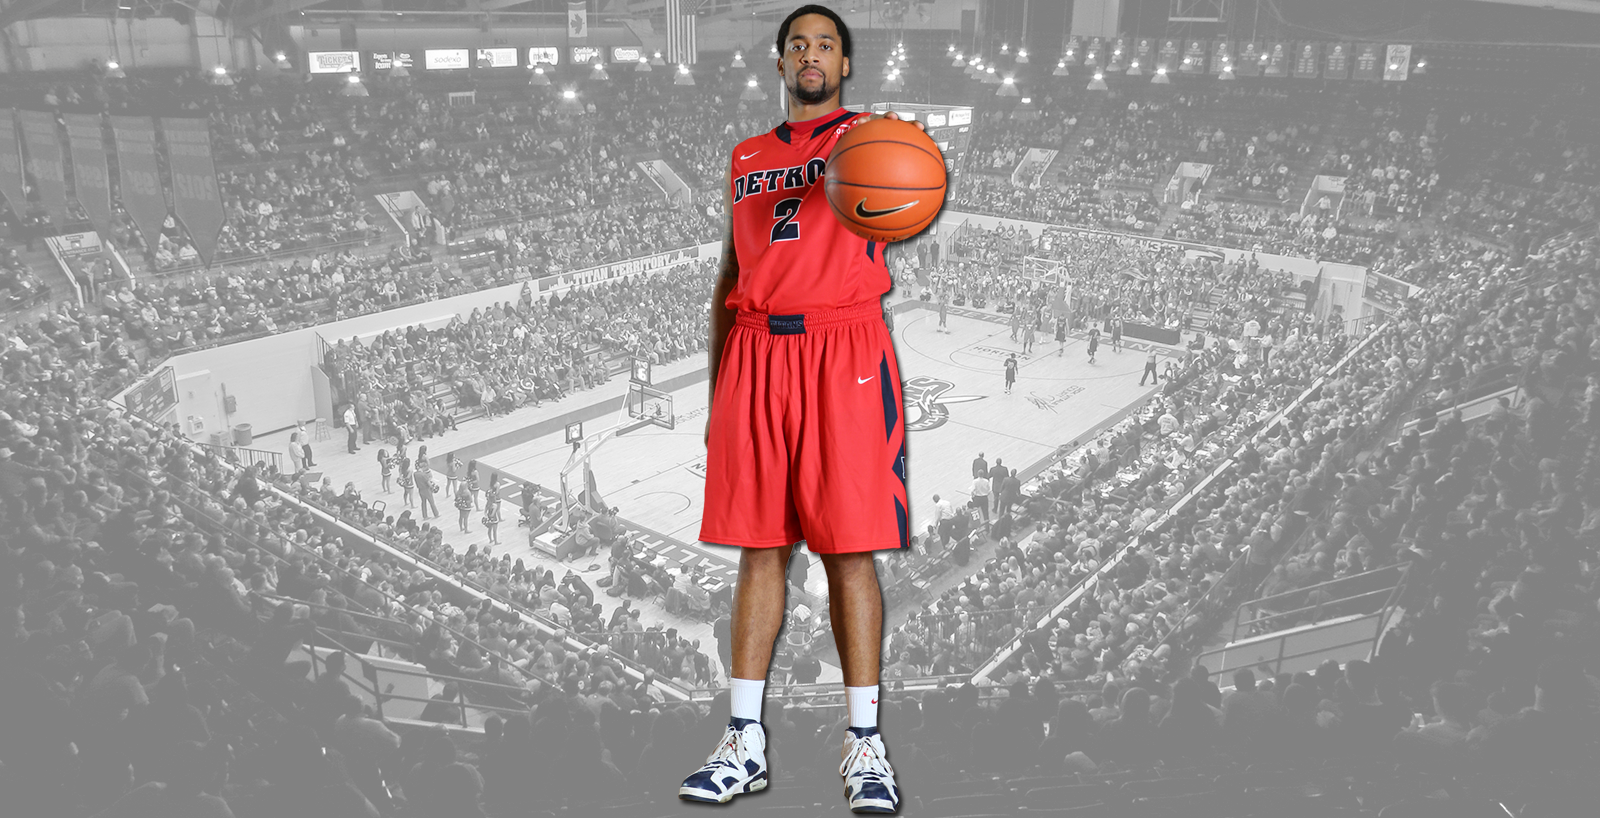 Juwan Howard Jr  - Men's Basketball - University of Detroit